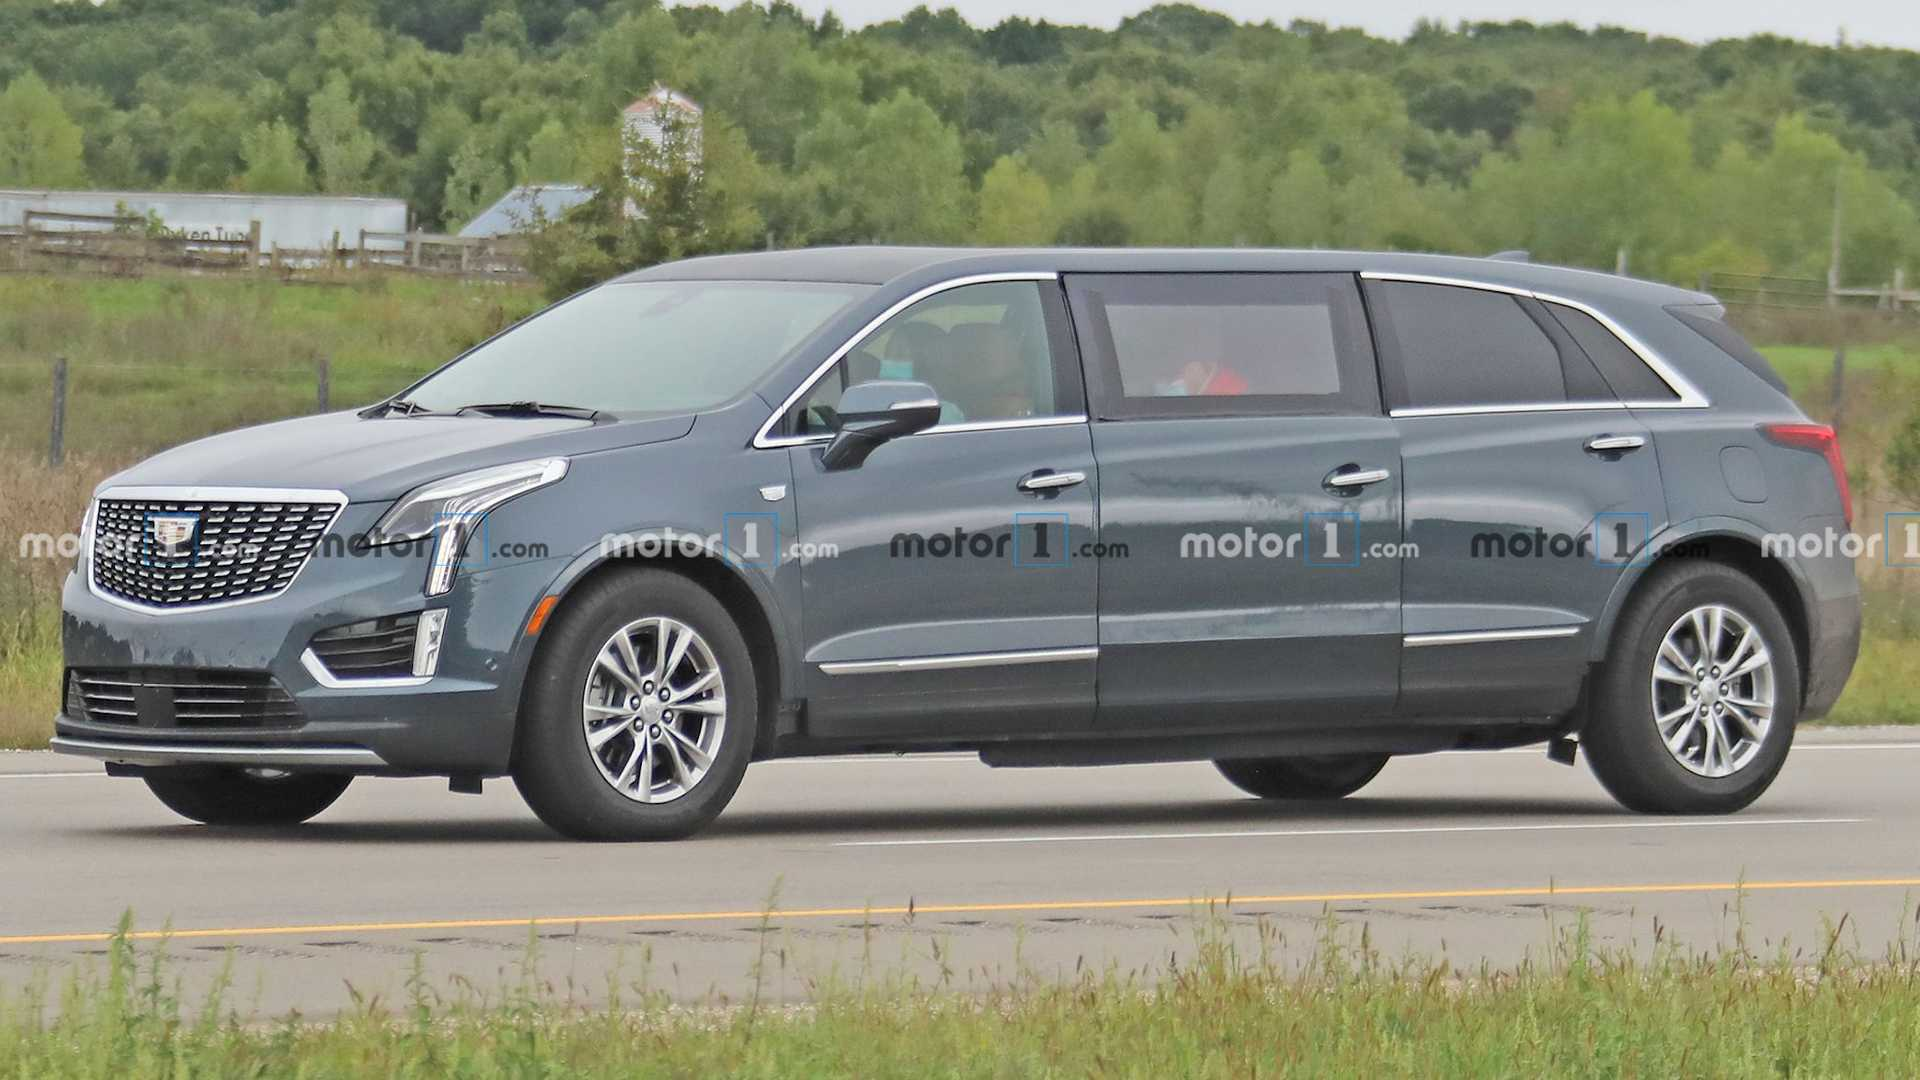 Spy Shots Cadillac Xt5 First Drive